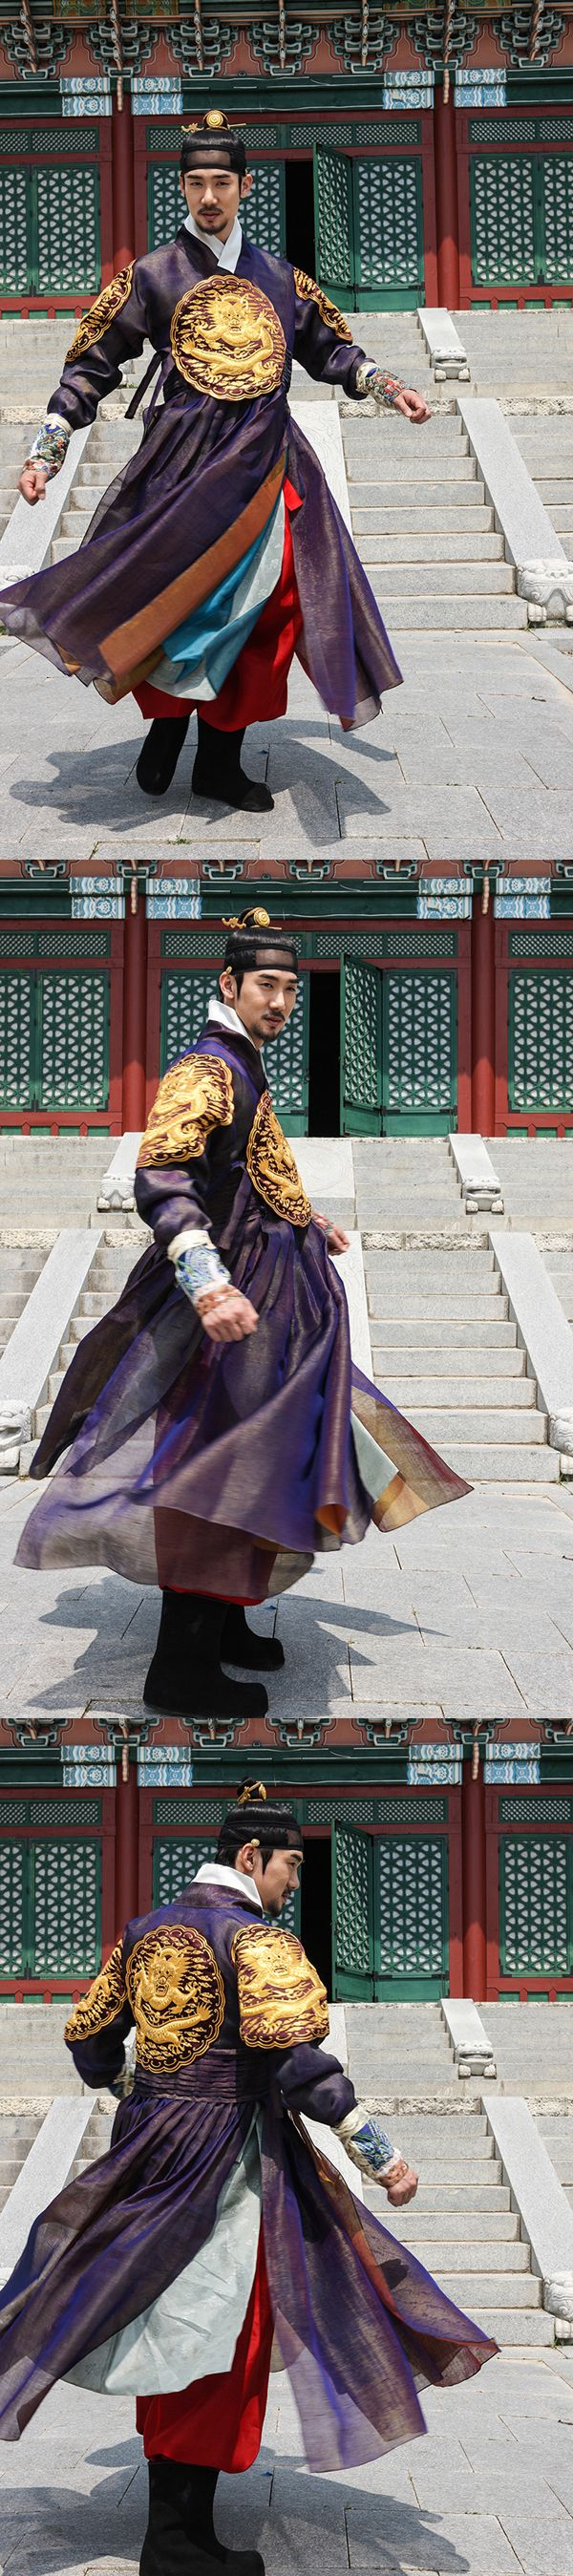 상의원 유연석The Royal Tailor (Hangul: 상의원; RR: Sanguiwon) is a 2014 South Korean period film directed byLee Won-suk, and starring Han Suk-kyu, Park Shin-hye, Go Soo and Yoo Yeon-seok.[4][5][6] The rivalry between two tailors at the Sanguiwon, where the attire worn by royalty were made during the Joseon era, plunges the court into scandal and tragedy.